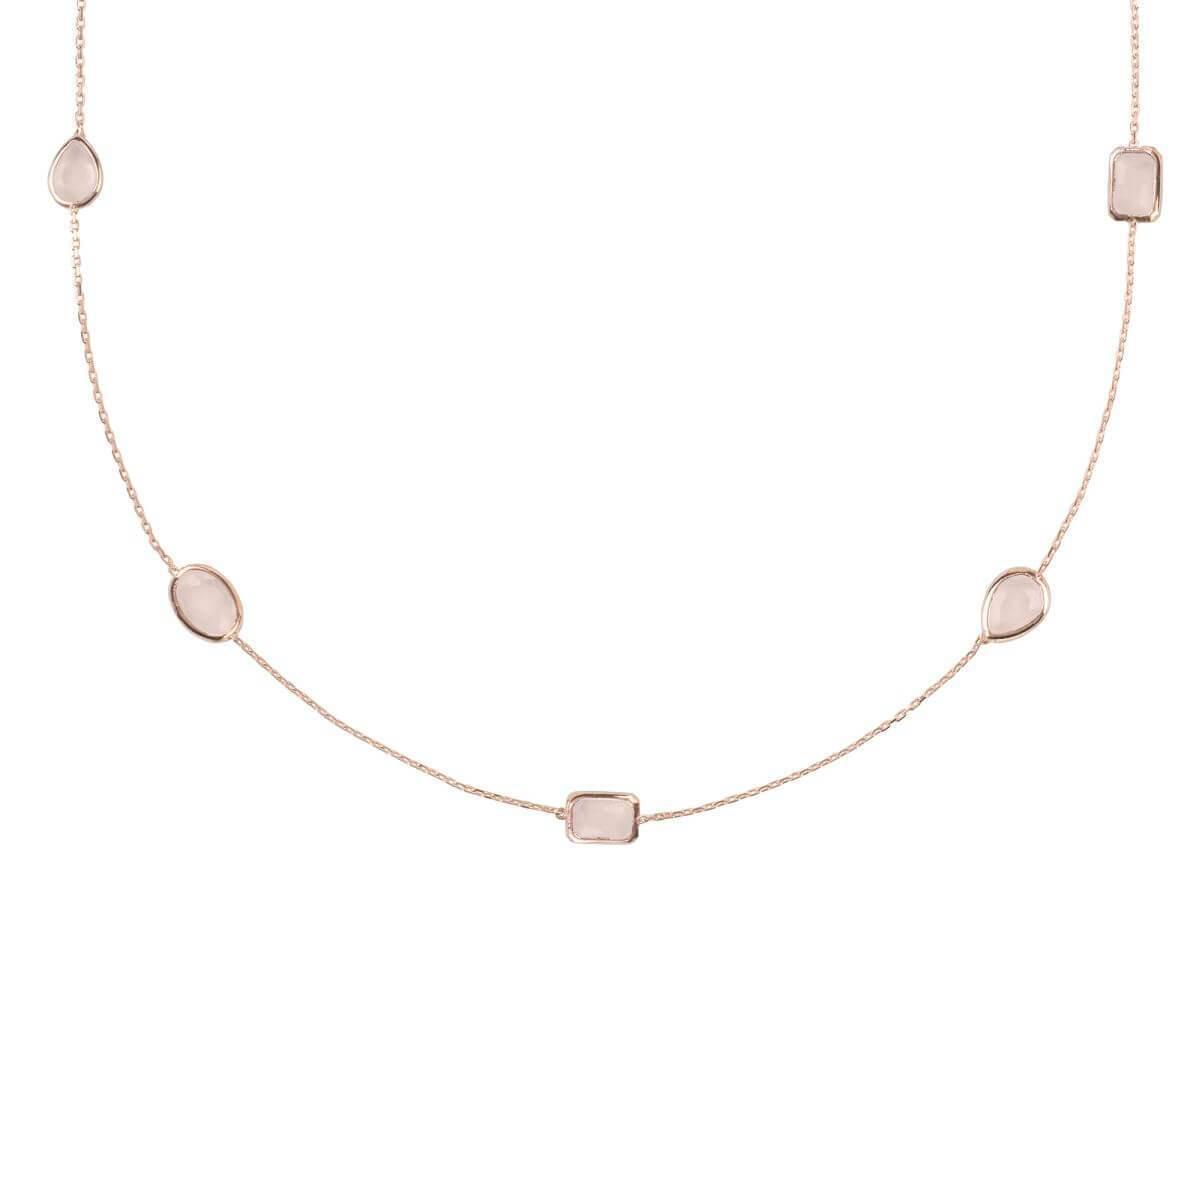 Latelita London Venice Long Chain Necklace Rose Gold Amethyst yXtZXxil